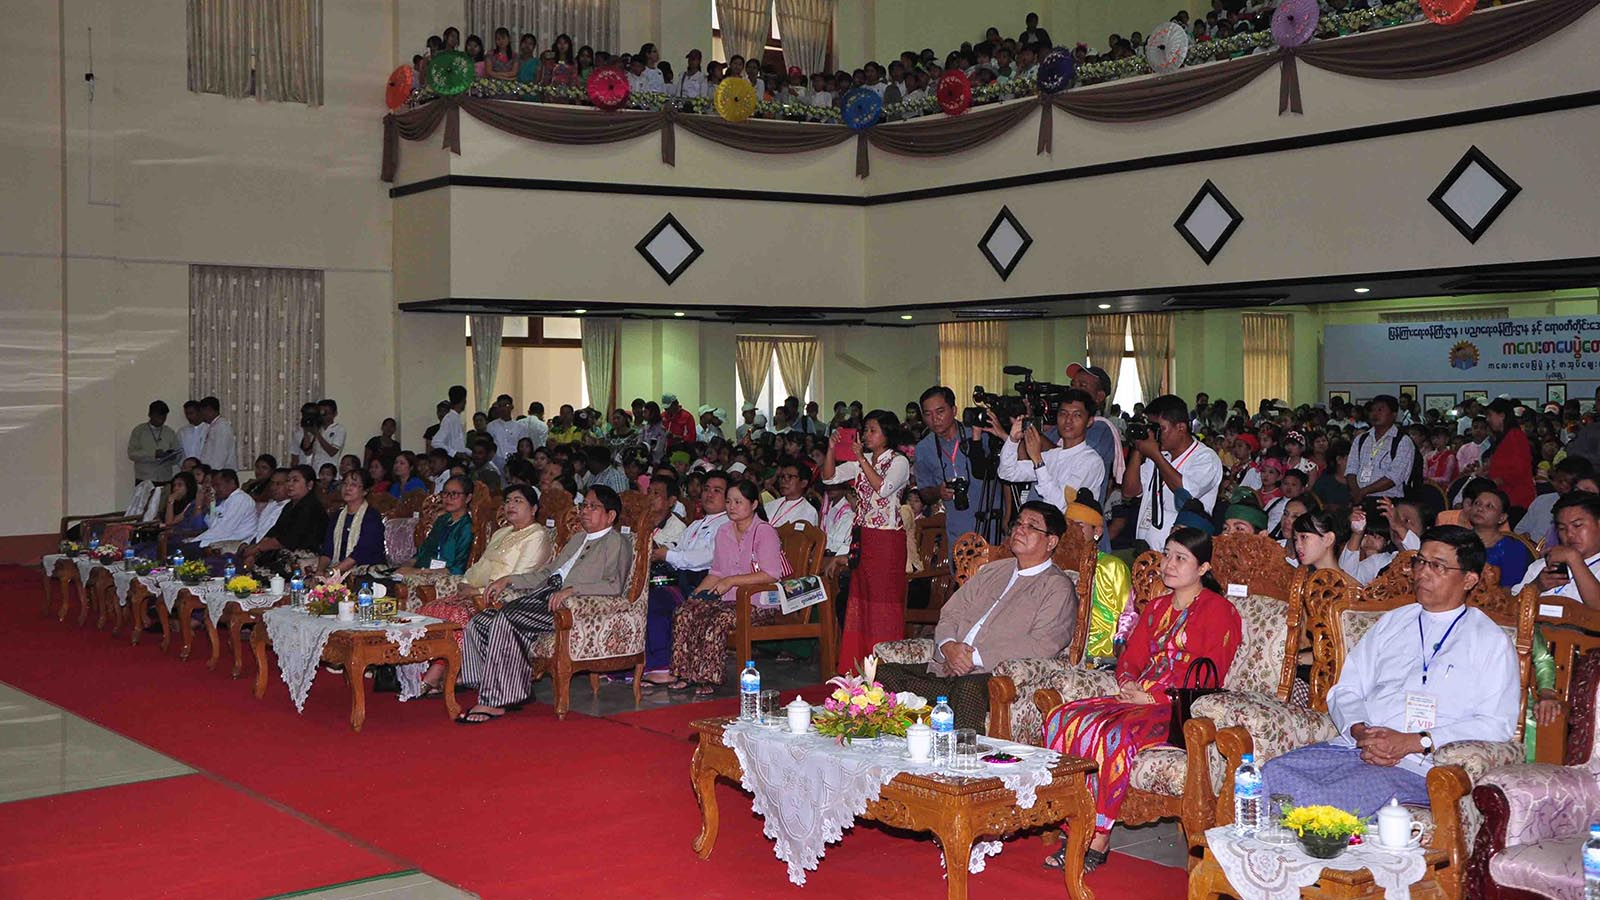 Union Minister Dr.Pe Myint and wife Daw Khaing Nwe Oo and the audience enjoy the youth's performance at the Children's Literature Festival .Photo: IPRD